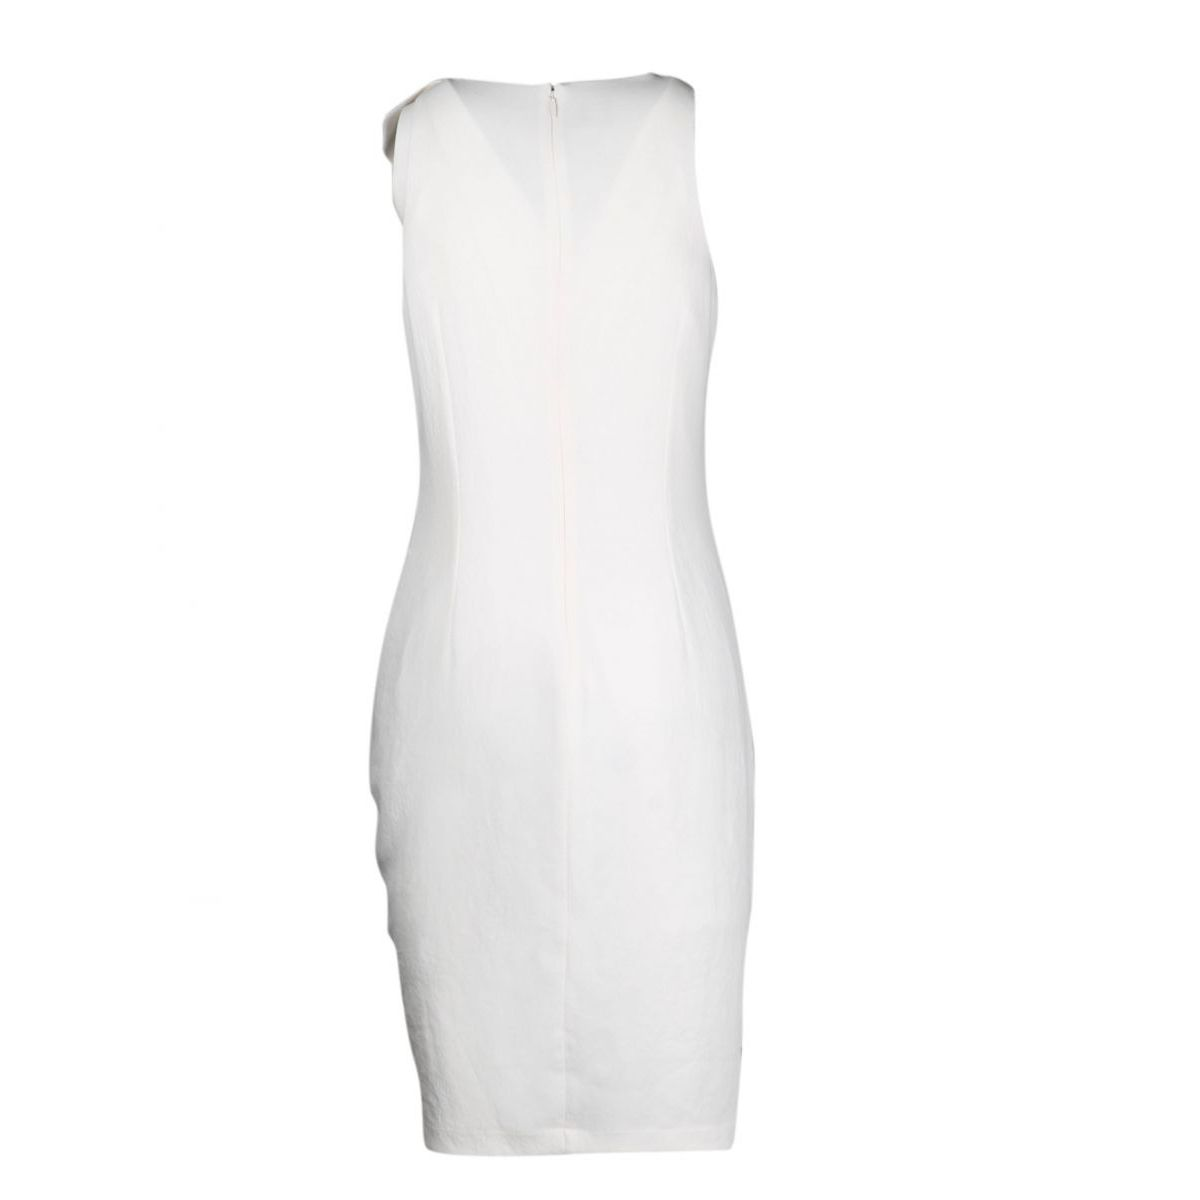 Bebyblade dress White Pinko